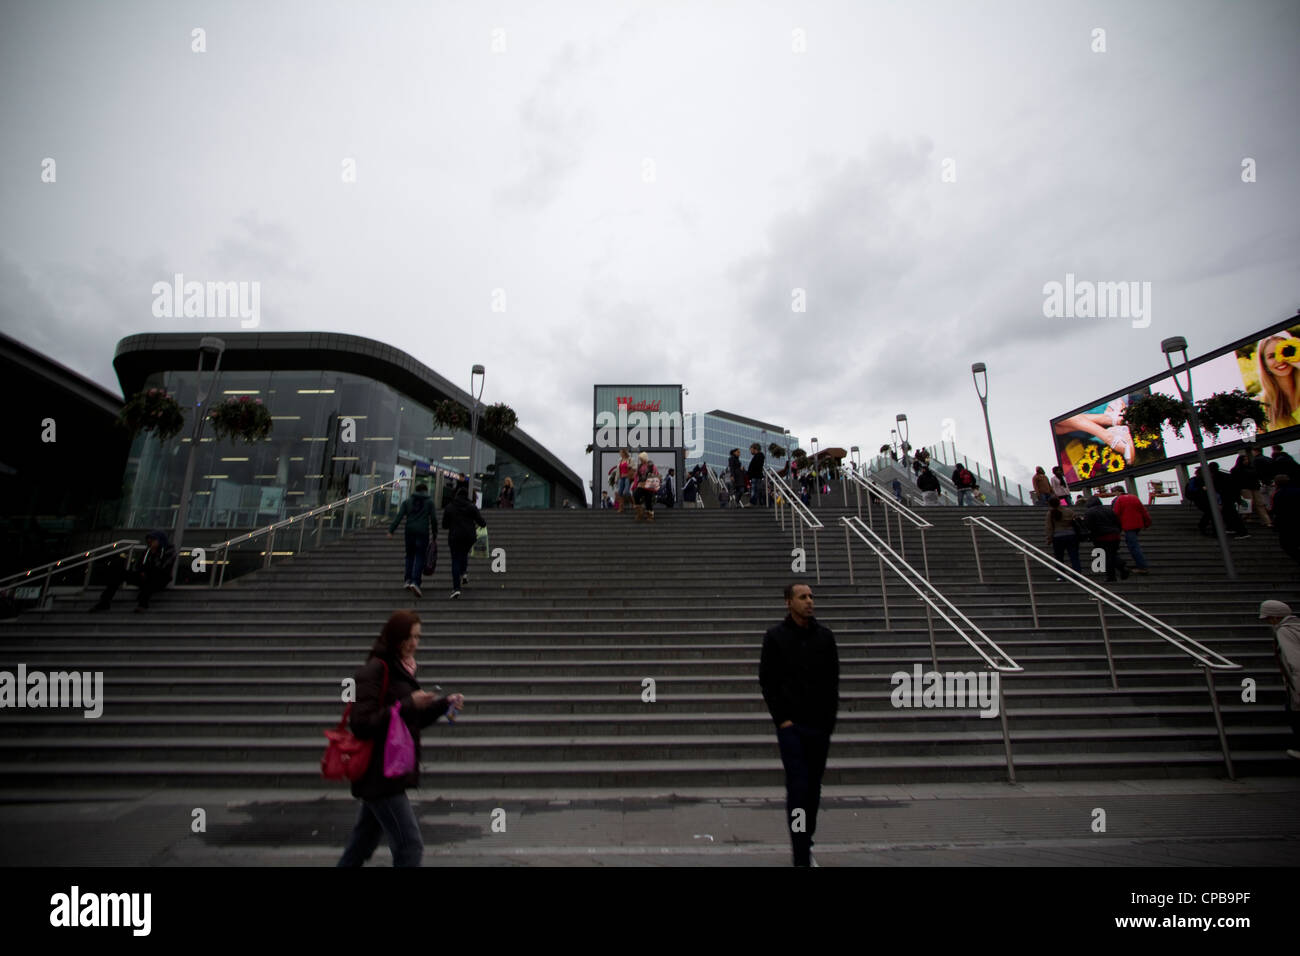 Westfield shopping centre stratford near olympic venue - Stock Image